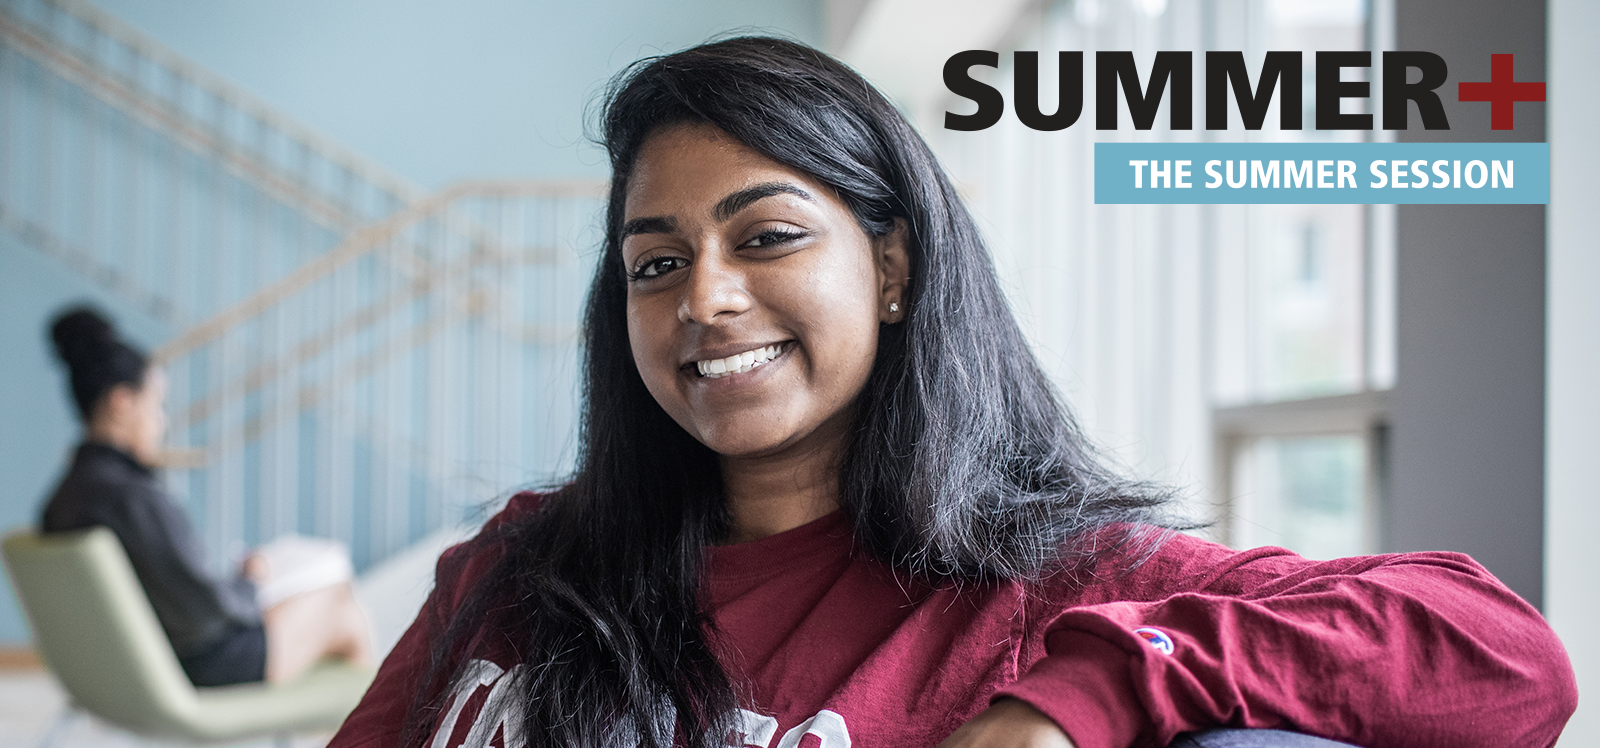 Summer+: the summer session. Smiling female student in UMass Amherst shirt